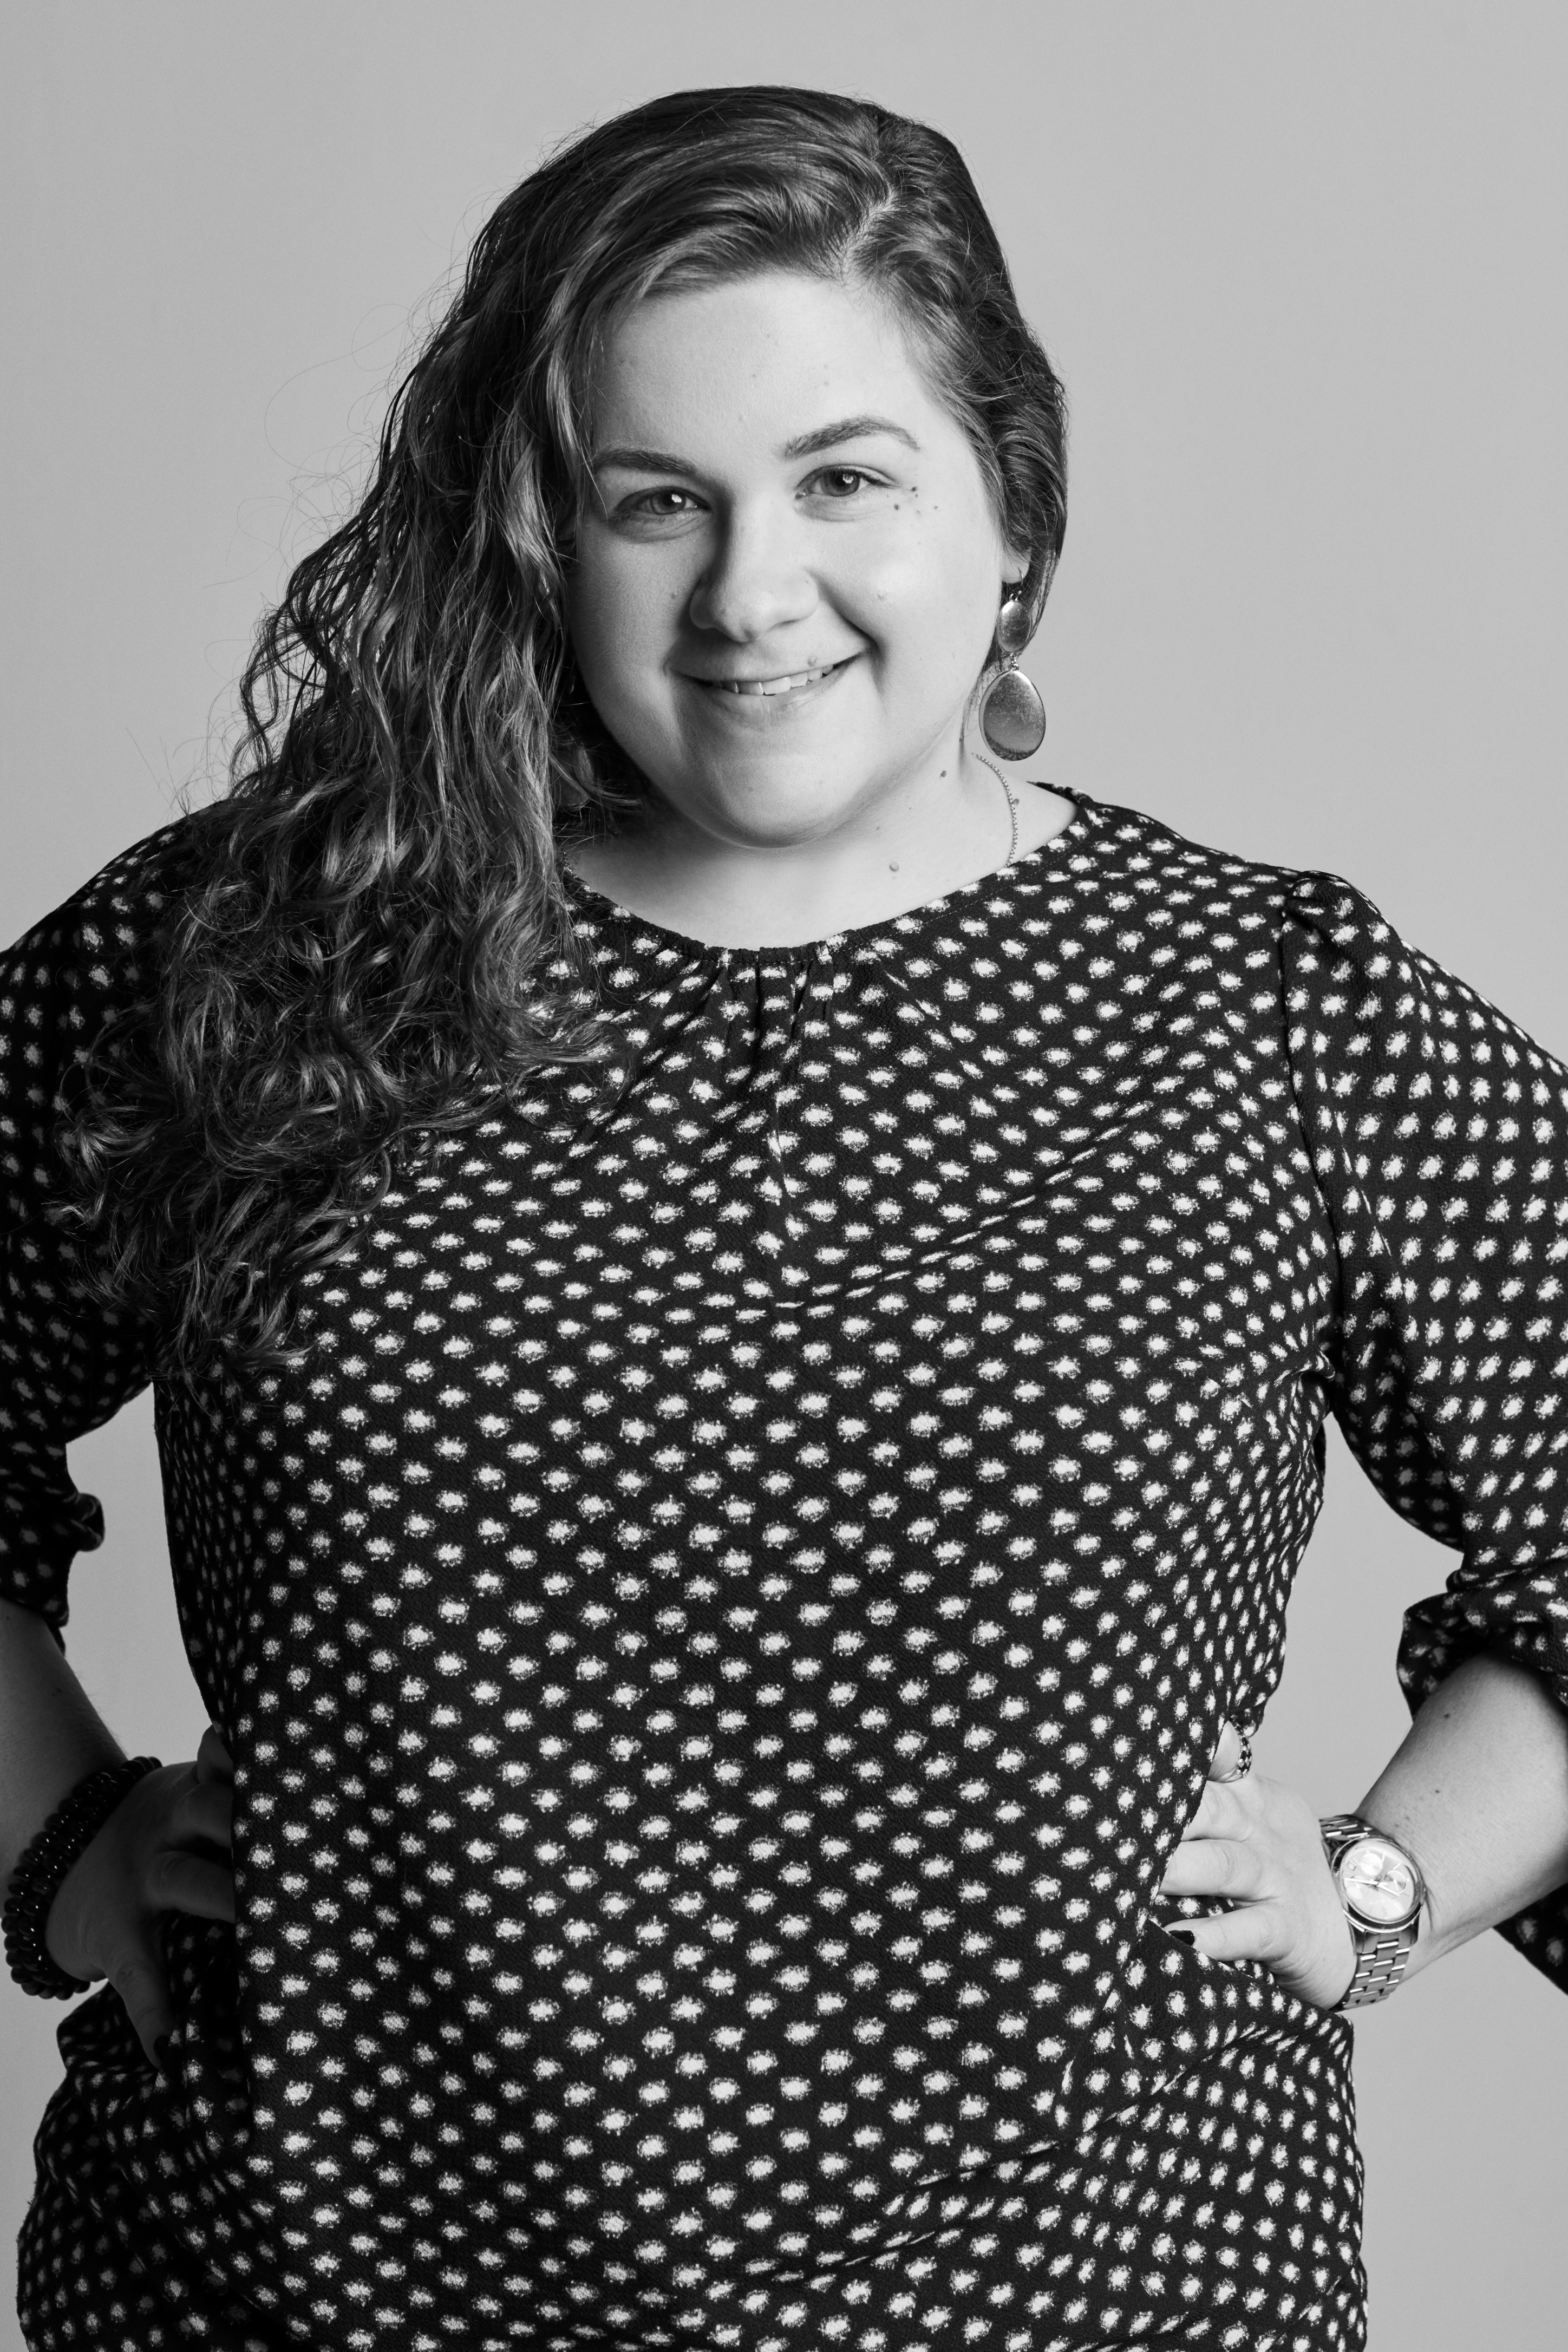 Angie,Procedures Designer for Store Operations(Woman in black and white polka dotted shirt)